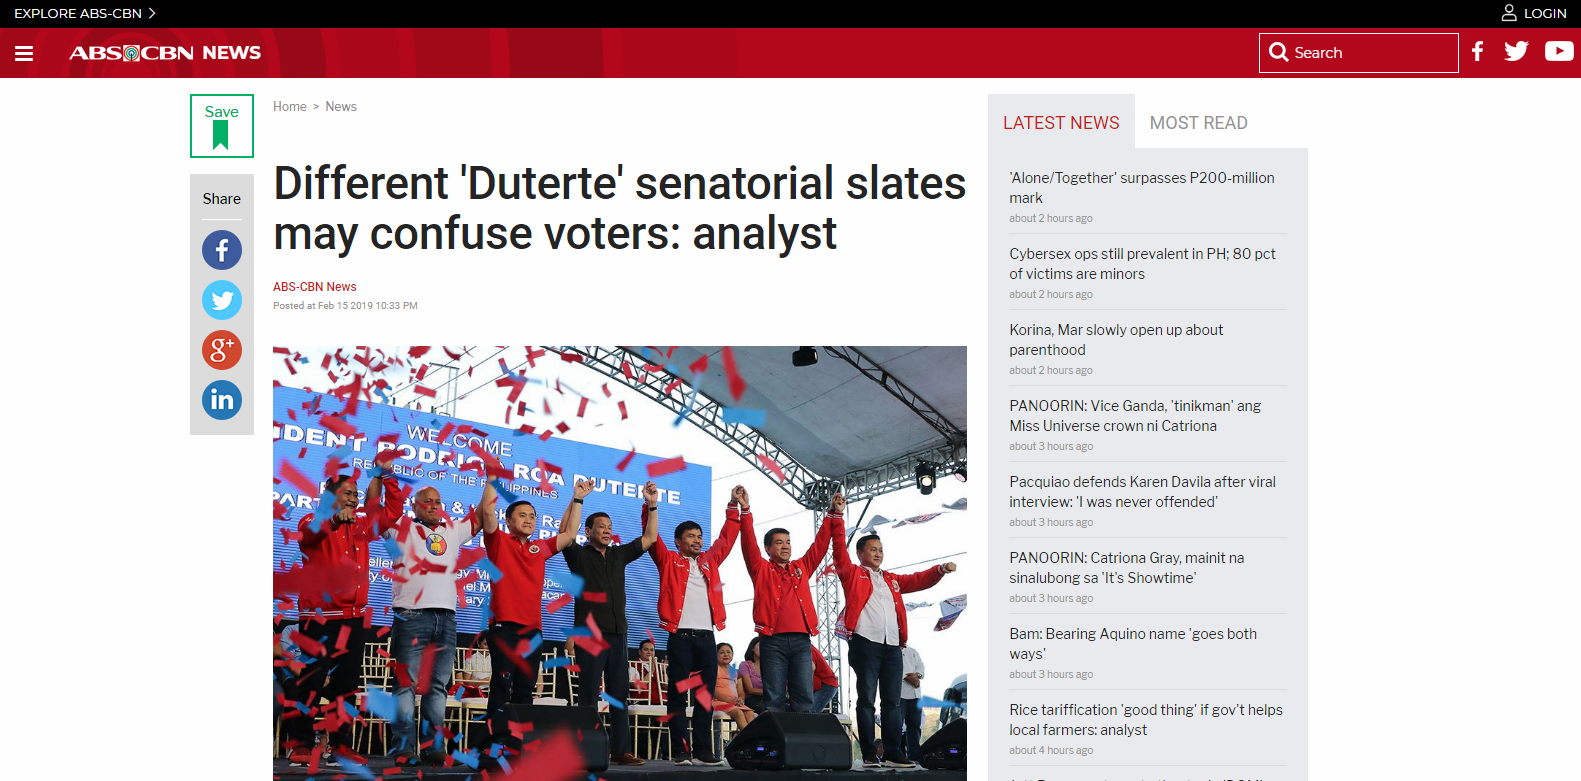 Different 'Duterte' senatorial slates may confuse voters: analyst